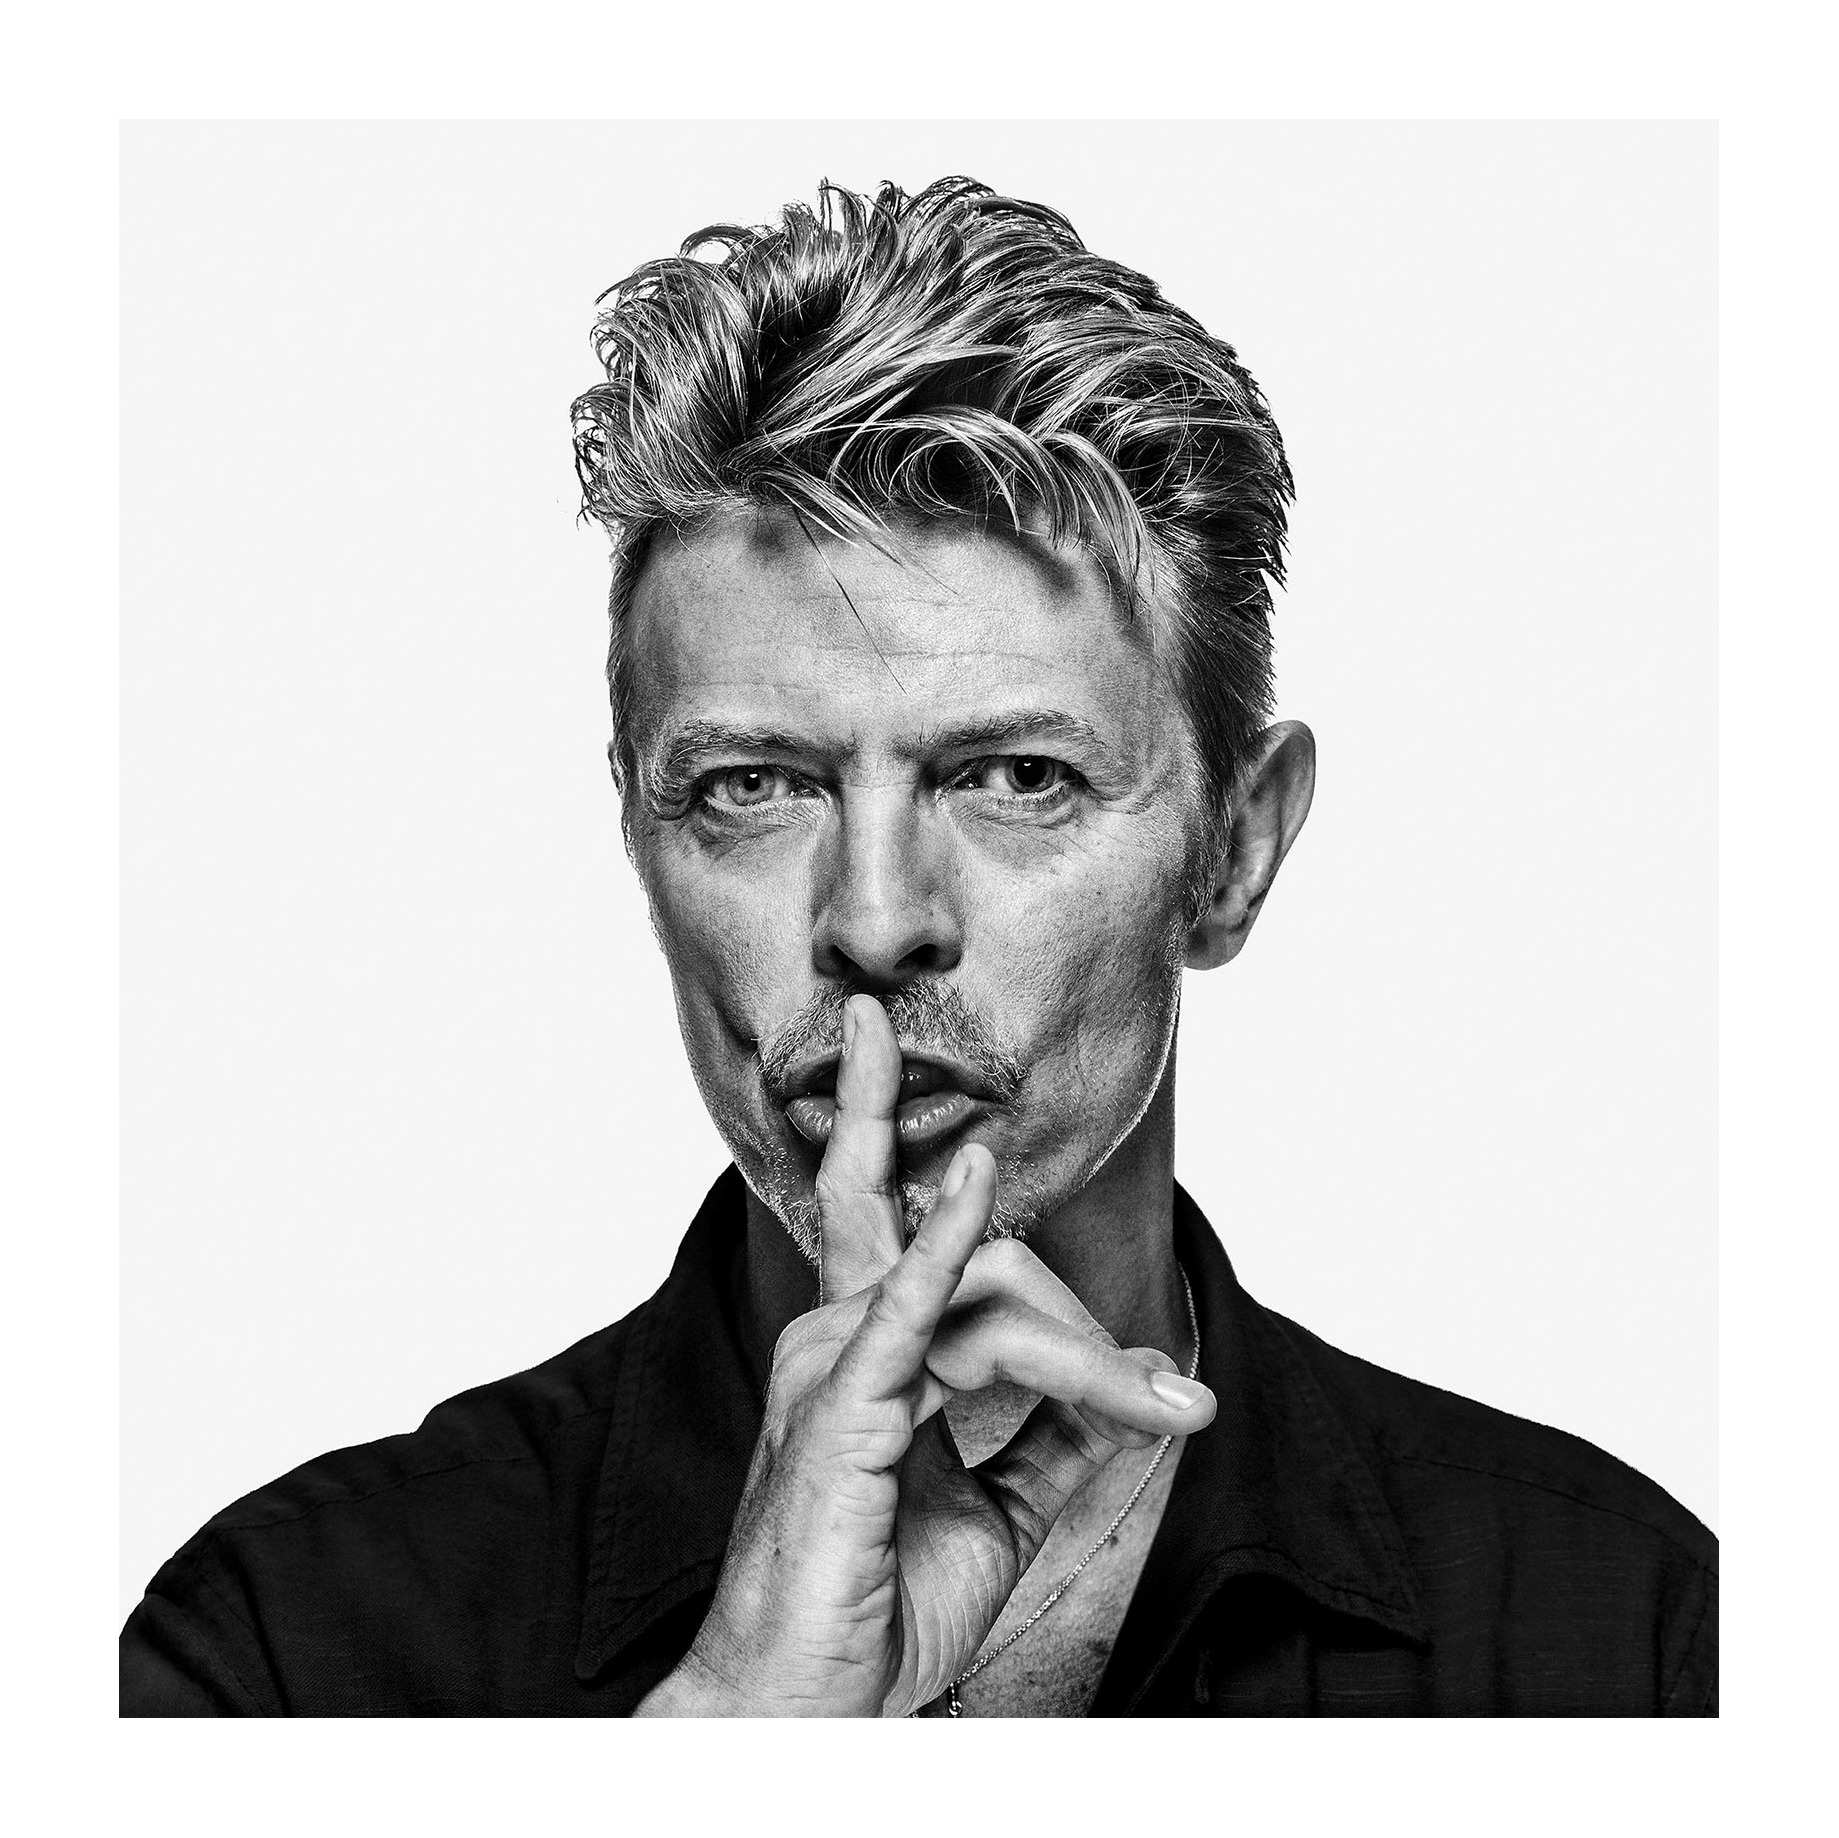 David Bowie Lumas Gallery coupon code